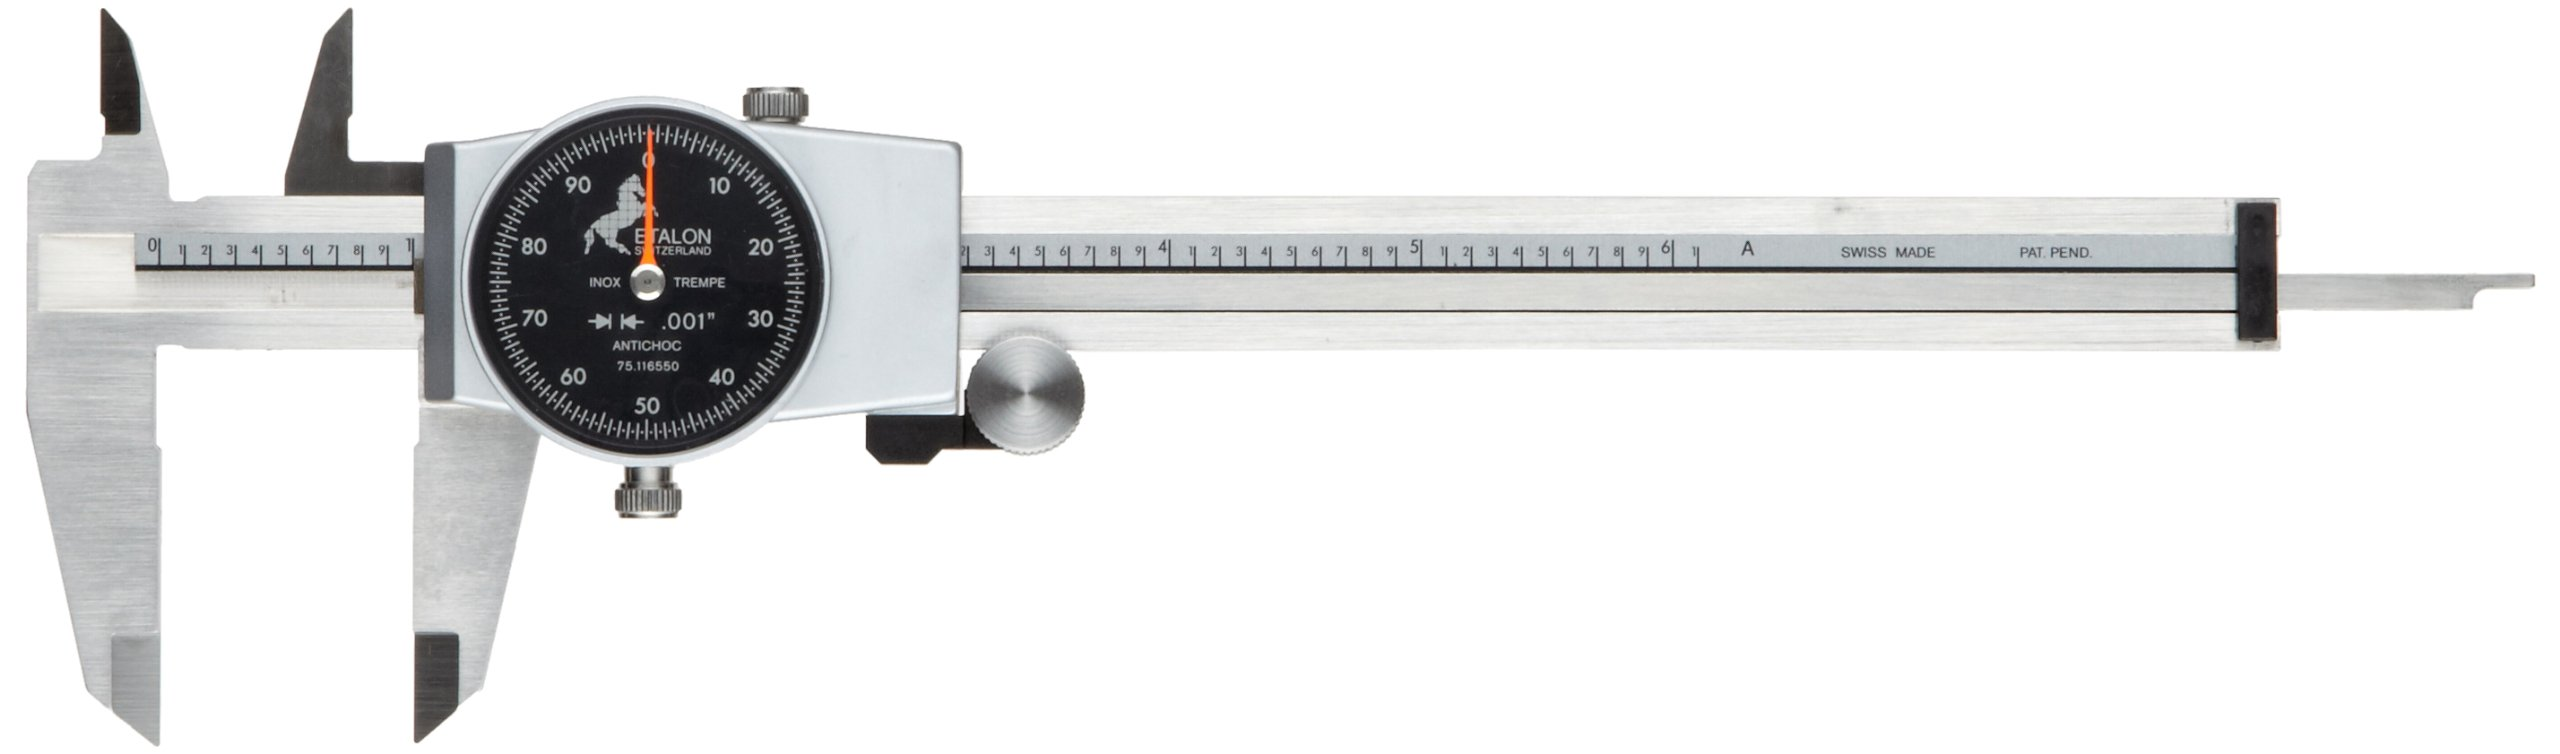 Brown & Sharpe 75.116550 Dial Caliper, Stainless Steel, Black Face, 0-6'' Range, +/-0.001'' Accuracy, 0.1'' Resolution, Meets DIN 862 Specifications